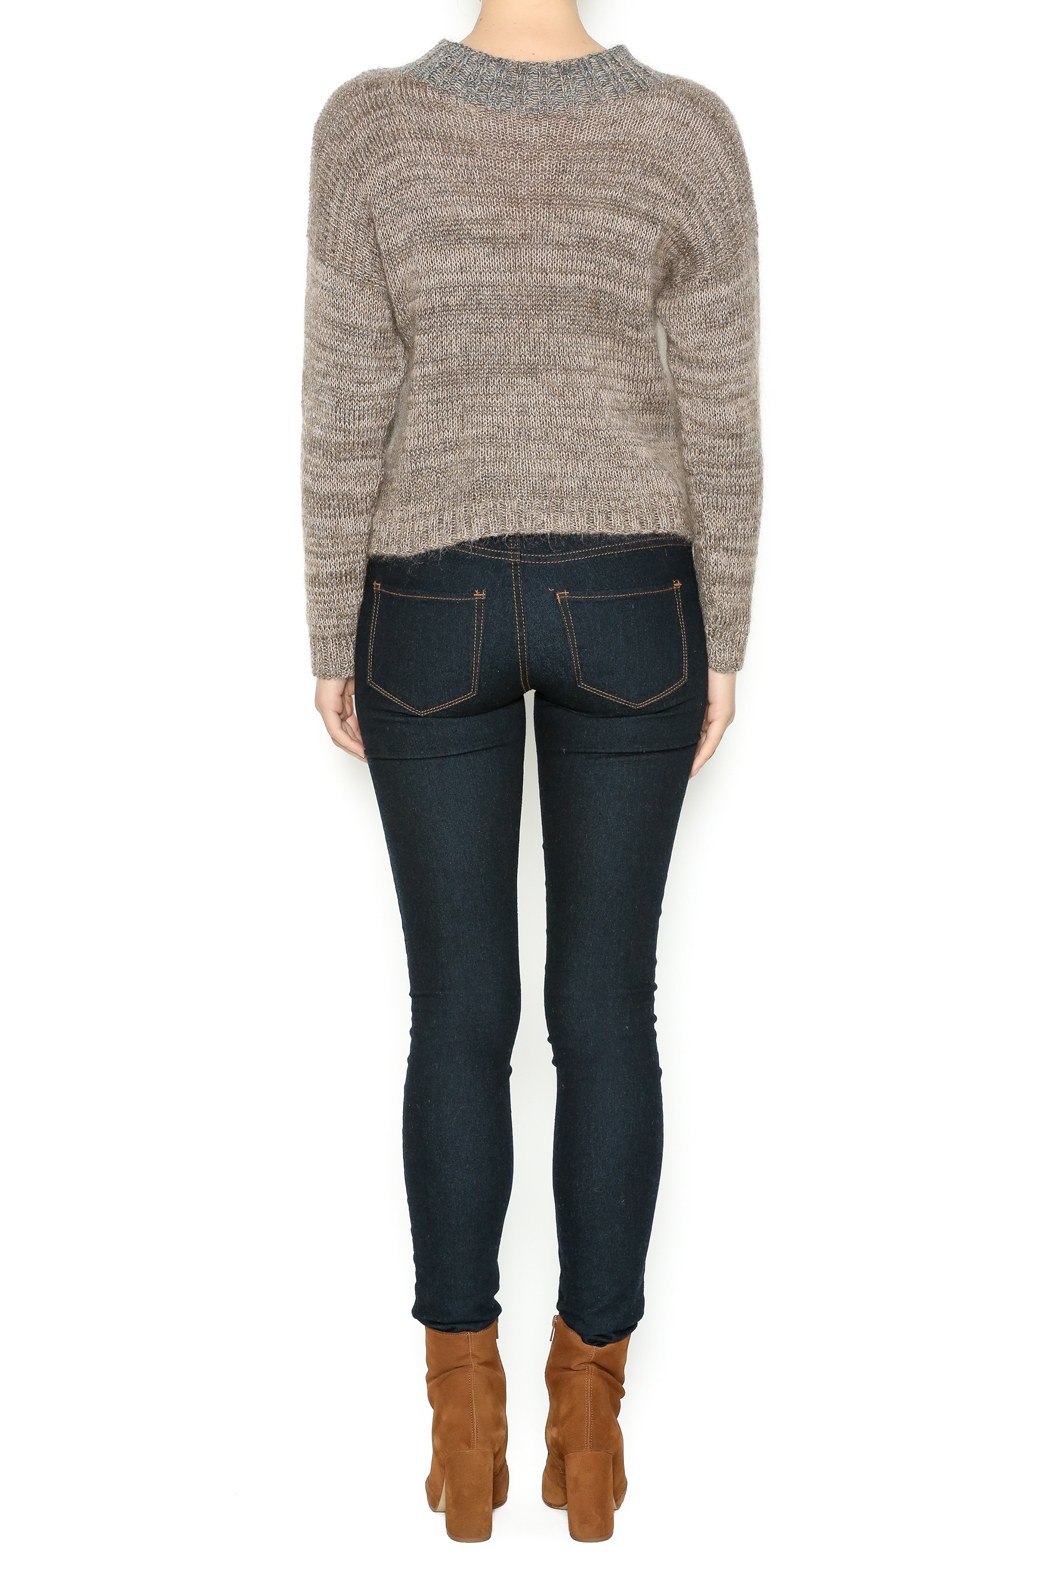 DC KNITS Tan Mohair Sweater - Side Cropped Image